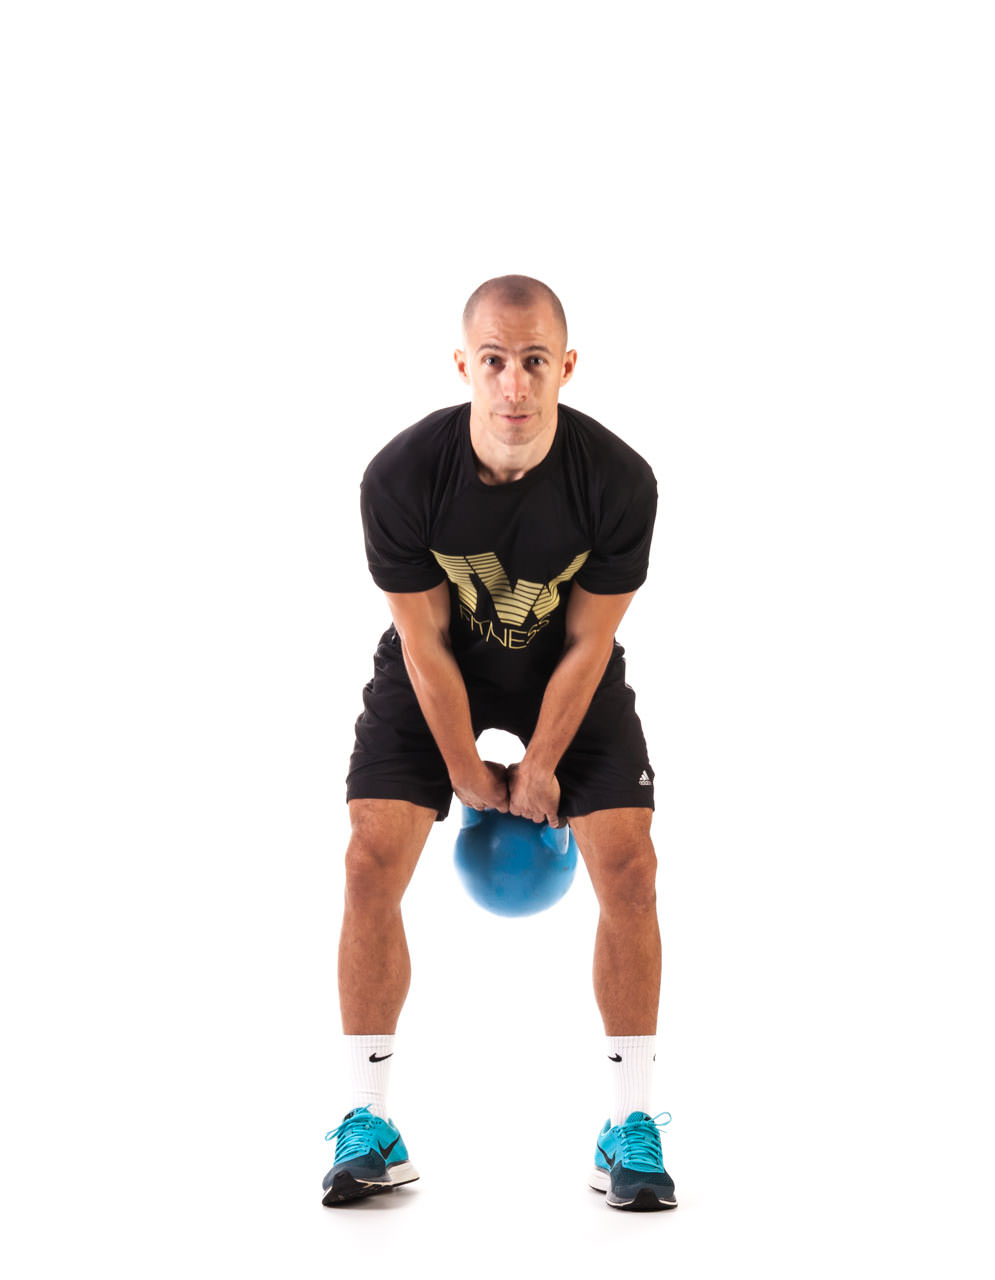 Two-Arm Kettlebell Swing frame #4